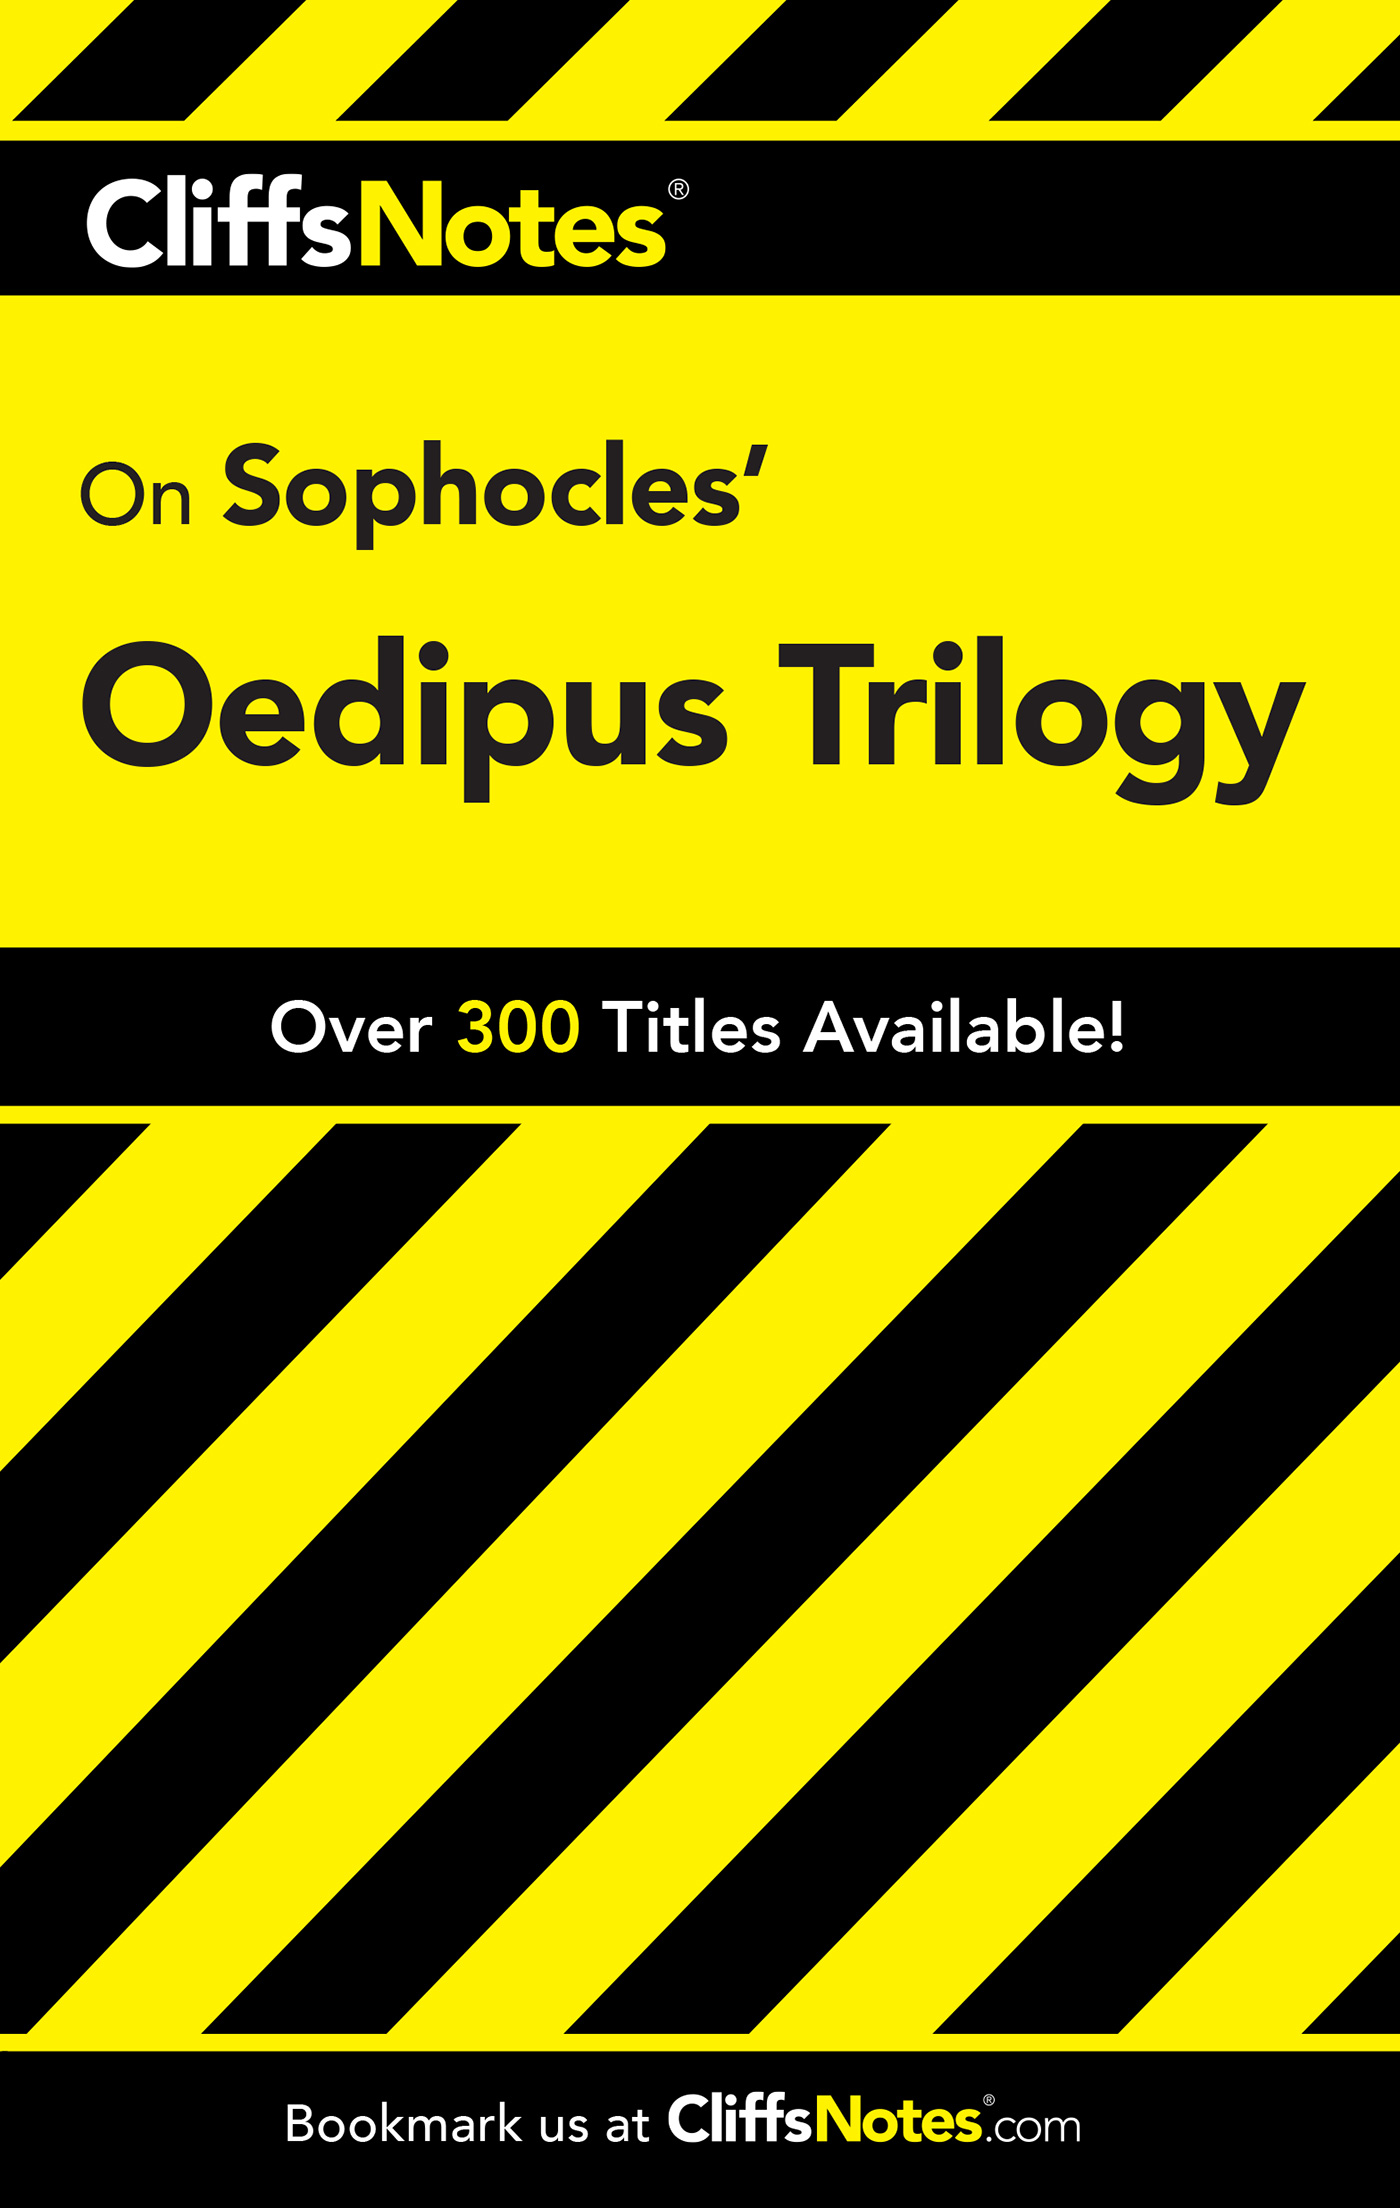 CliffsNotes on Sophocles' Oedipus Trilogy-9780764585814